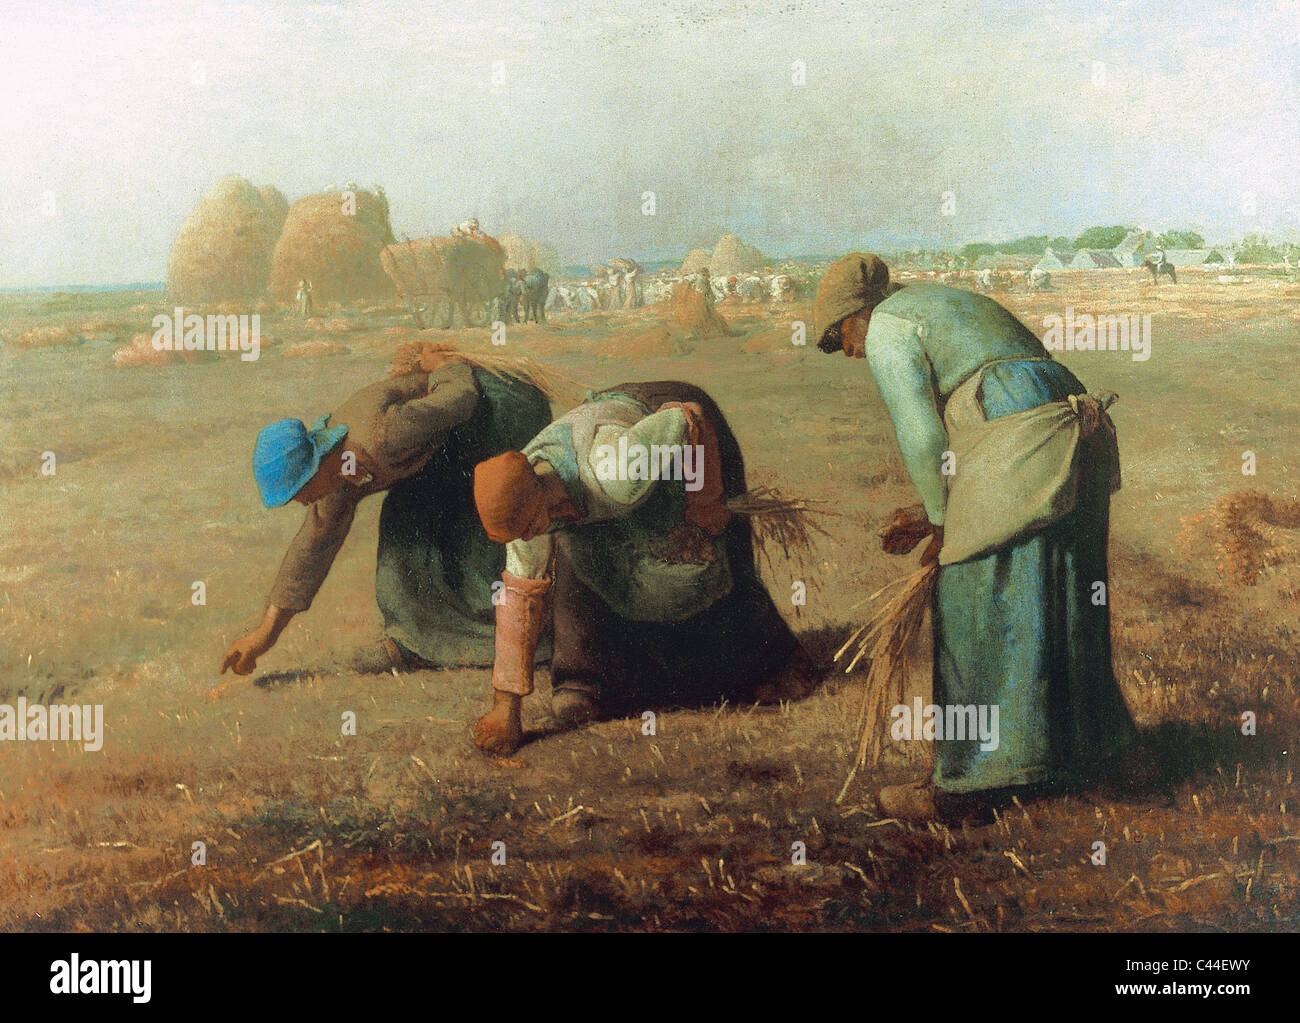 Jean-François Millet (1814-1875). French painter, one of the founders of the Barbizon School. The Gleaners - Stock Image